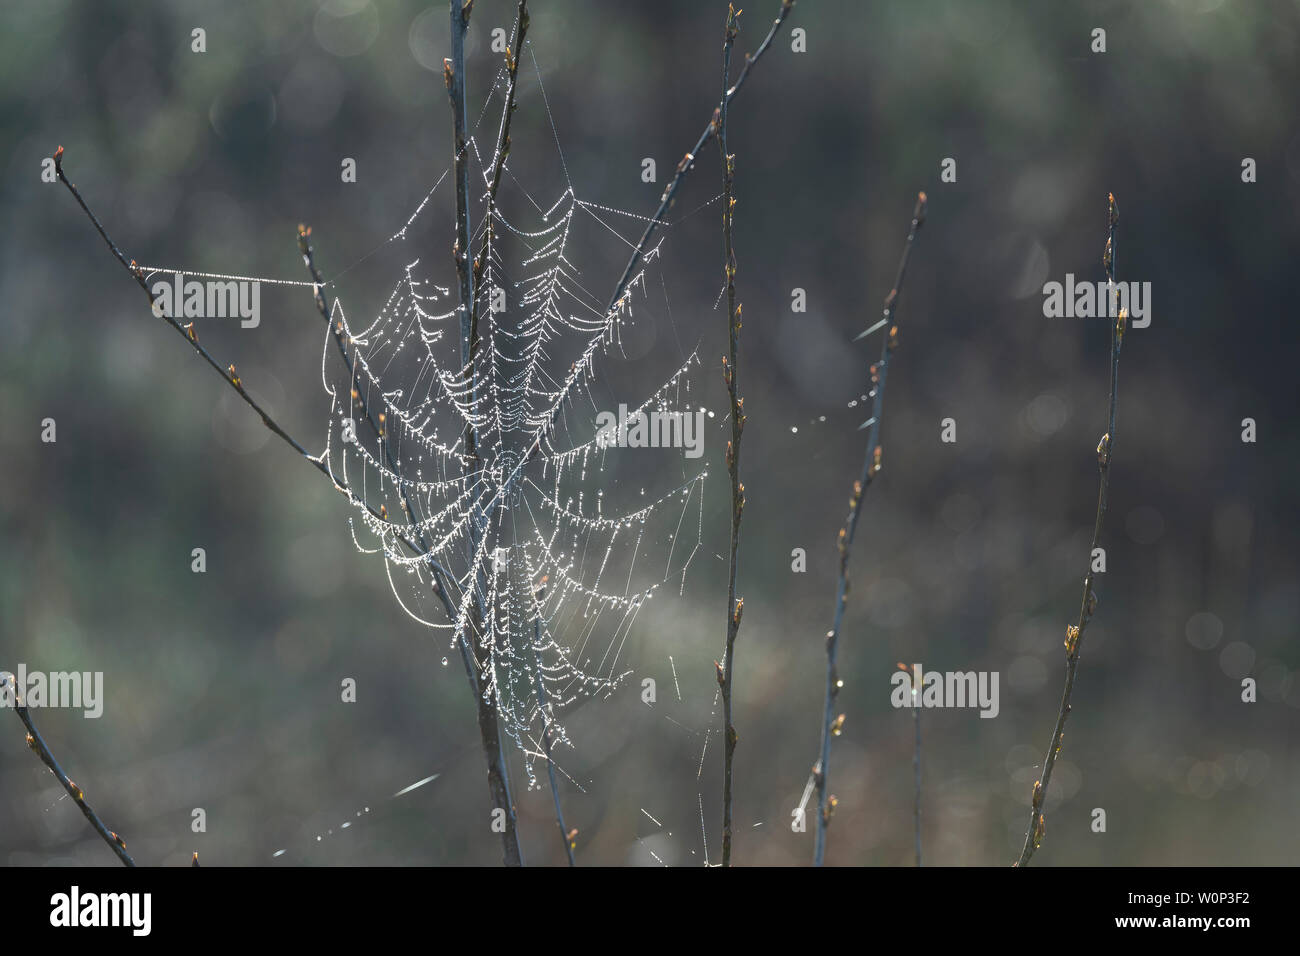 Dewy spider webs, Eastern North America, by Dominique Braud/Dembinsky Photo Assoc - Stock Image